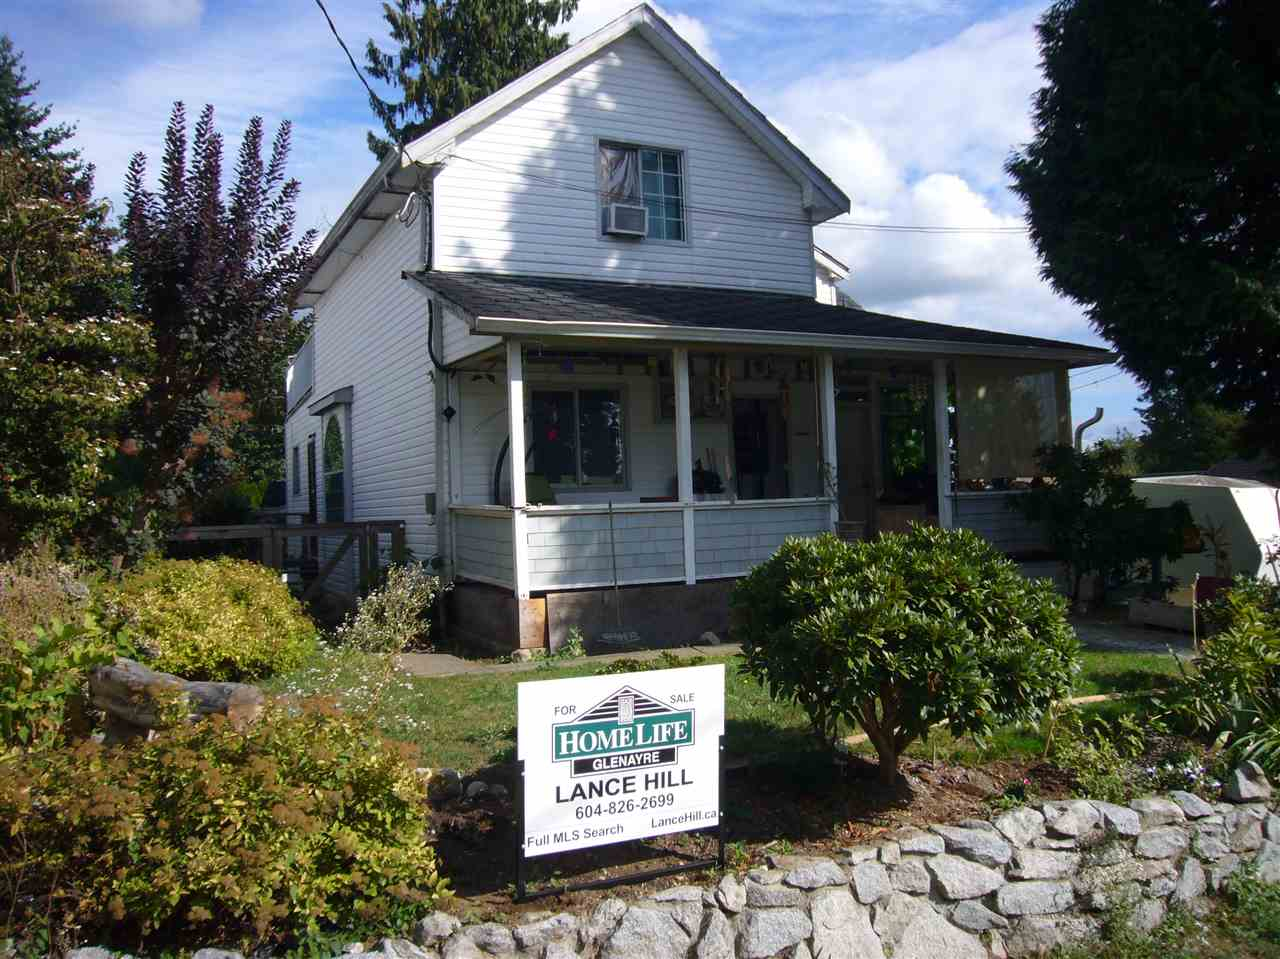 HERE'S A GREAT OPPORTUNITY. Heritage Style House with a Large Covered Front Porch. 3 bedrooms on the main floor, plus a 1 bedroom suite above with a massive 14' x 25' deck and a basement for storage. Situated in a great location and is an easy walk to all levels of schools, the recreation center and play fields. Bonus, the back yard is accessible via a lane. This is the affordable home you have been looking for. Call to see your new home today.